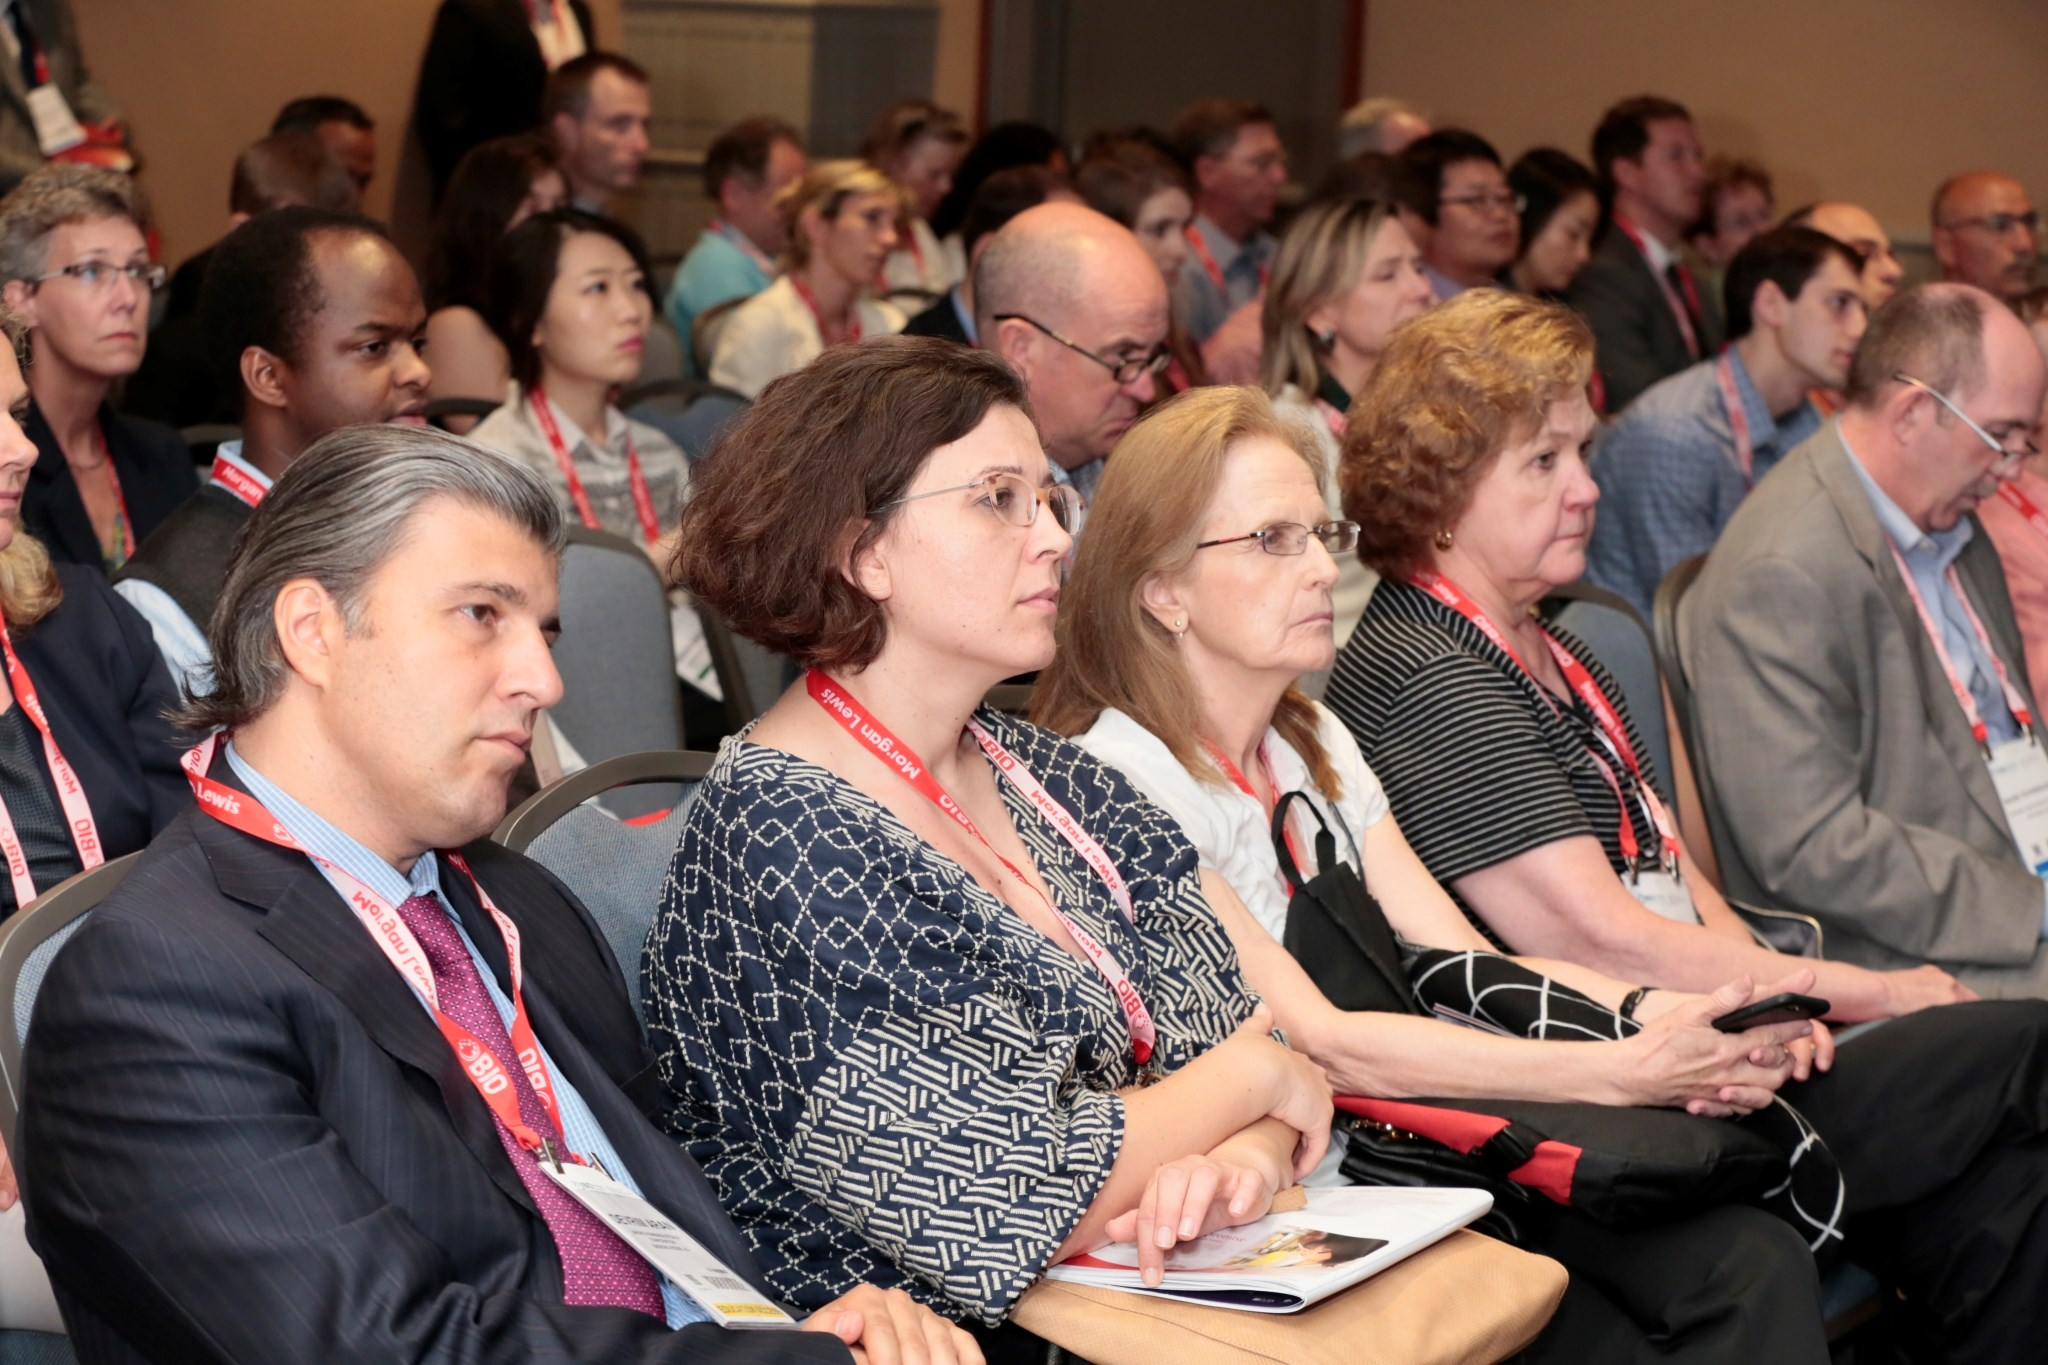 Attendees at the annual BIO International Convention